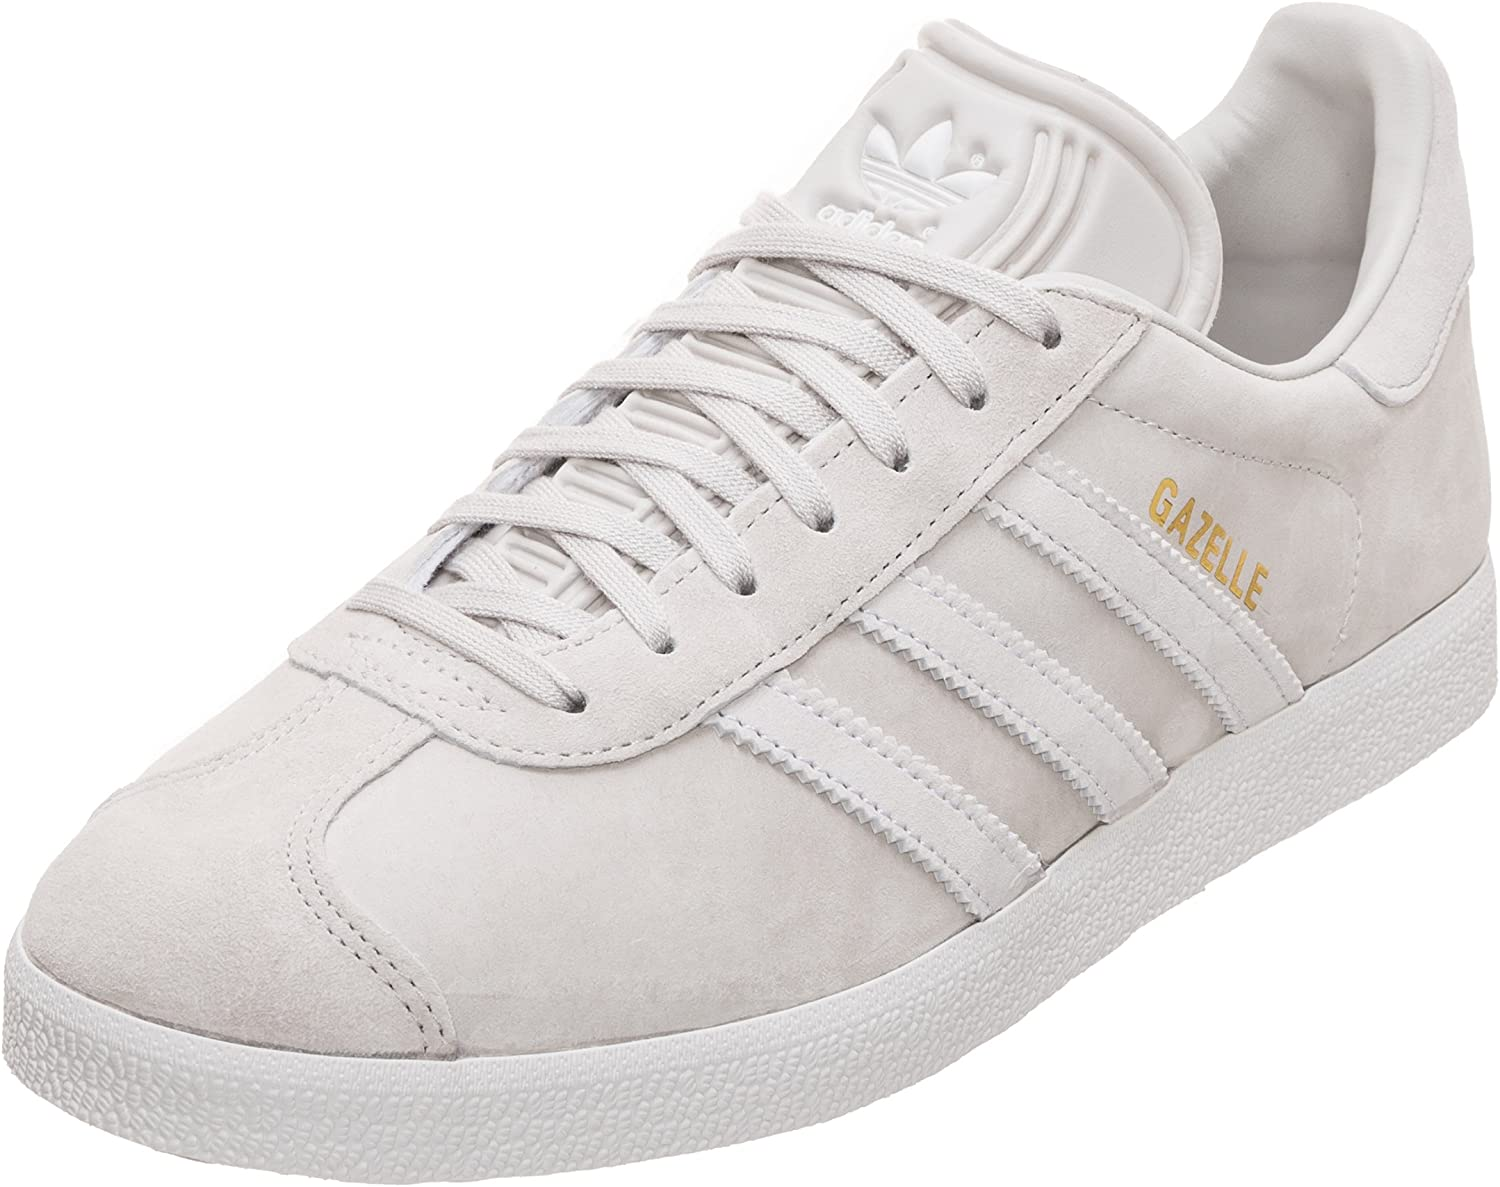 bueno Error lila  Adidas Gazelle Trainers Women's, light-grey / white, 6.5 UK - 40 EU:  Amazon.co.uk: Sports & Outdoors